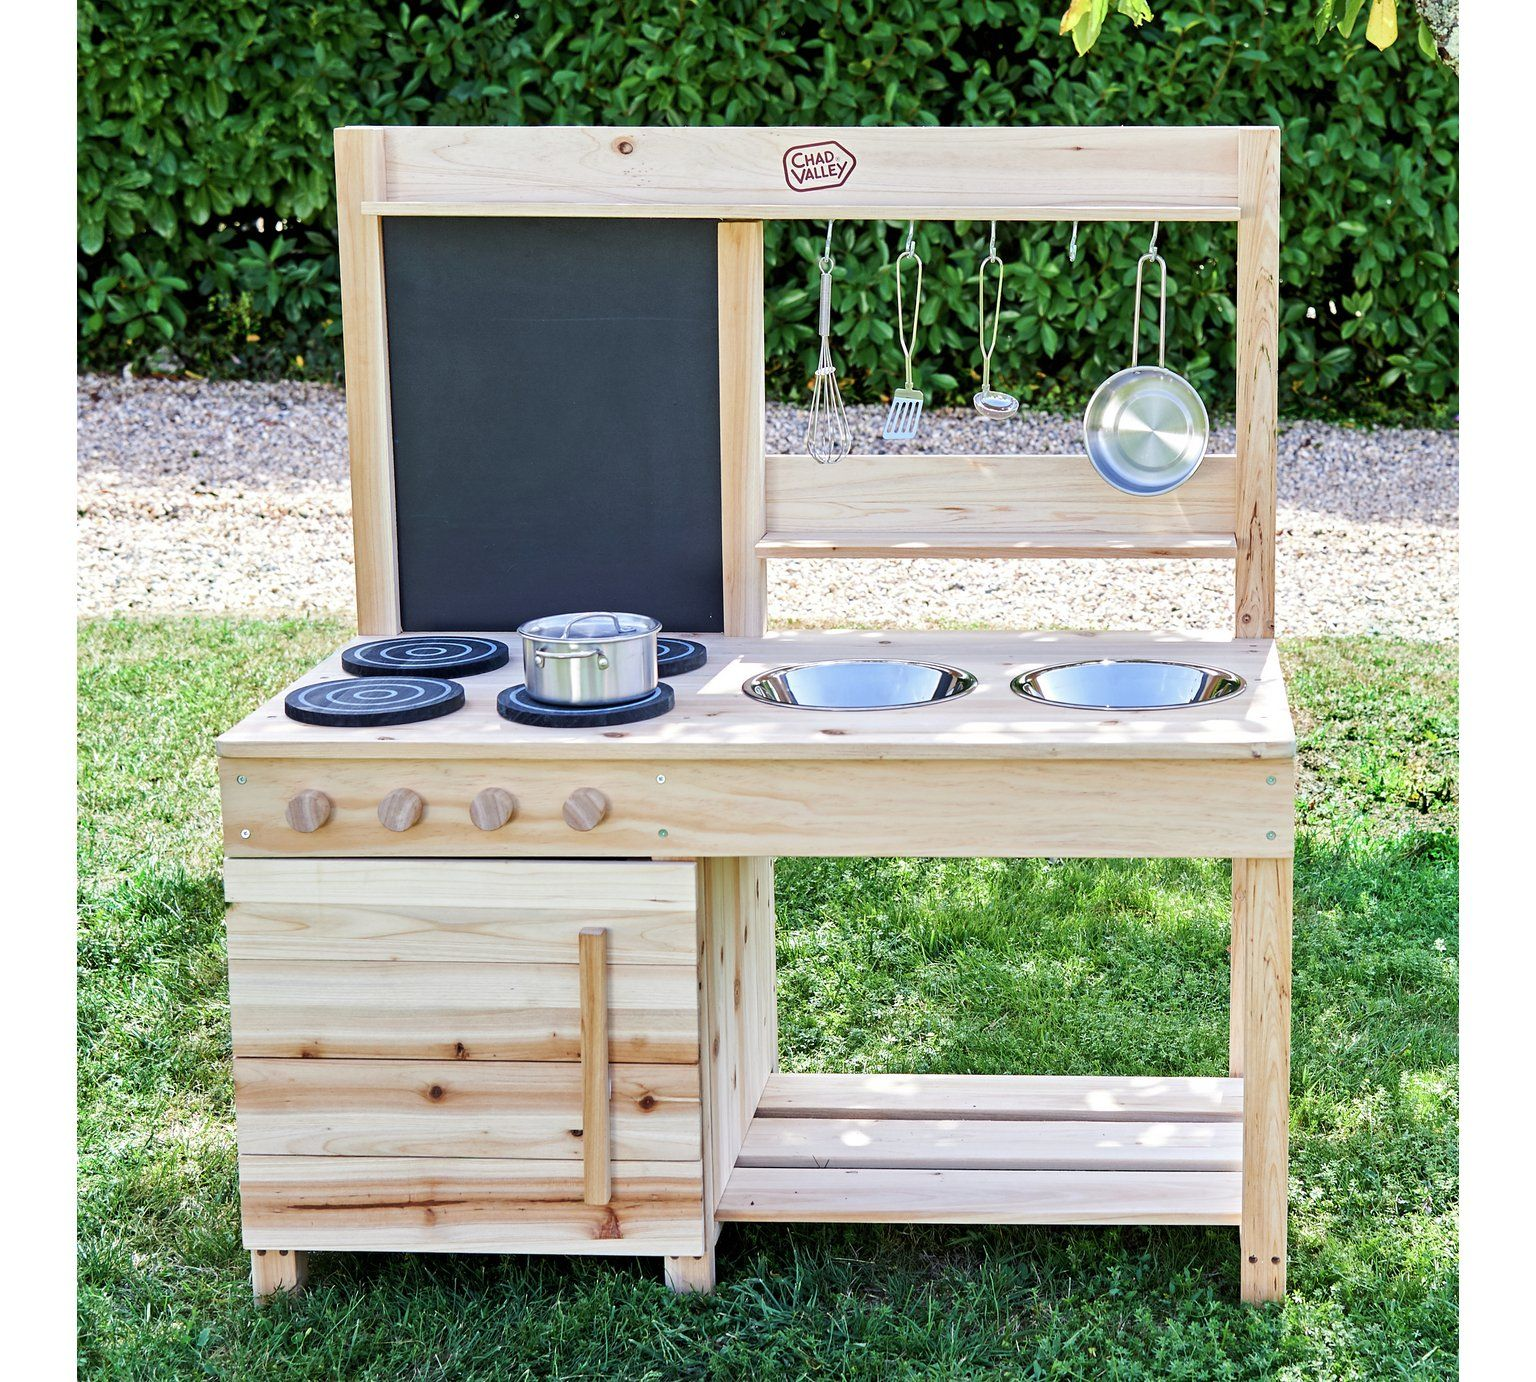 Buy Chad Valley Wooden Mud Kitchen Role play toys in